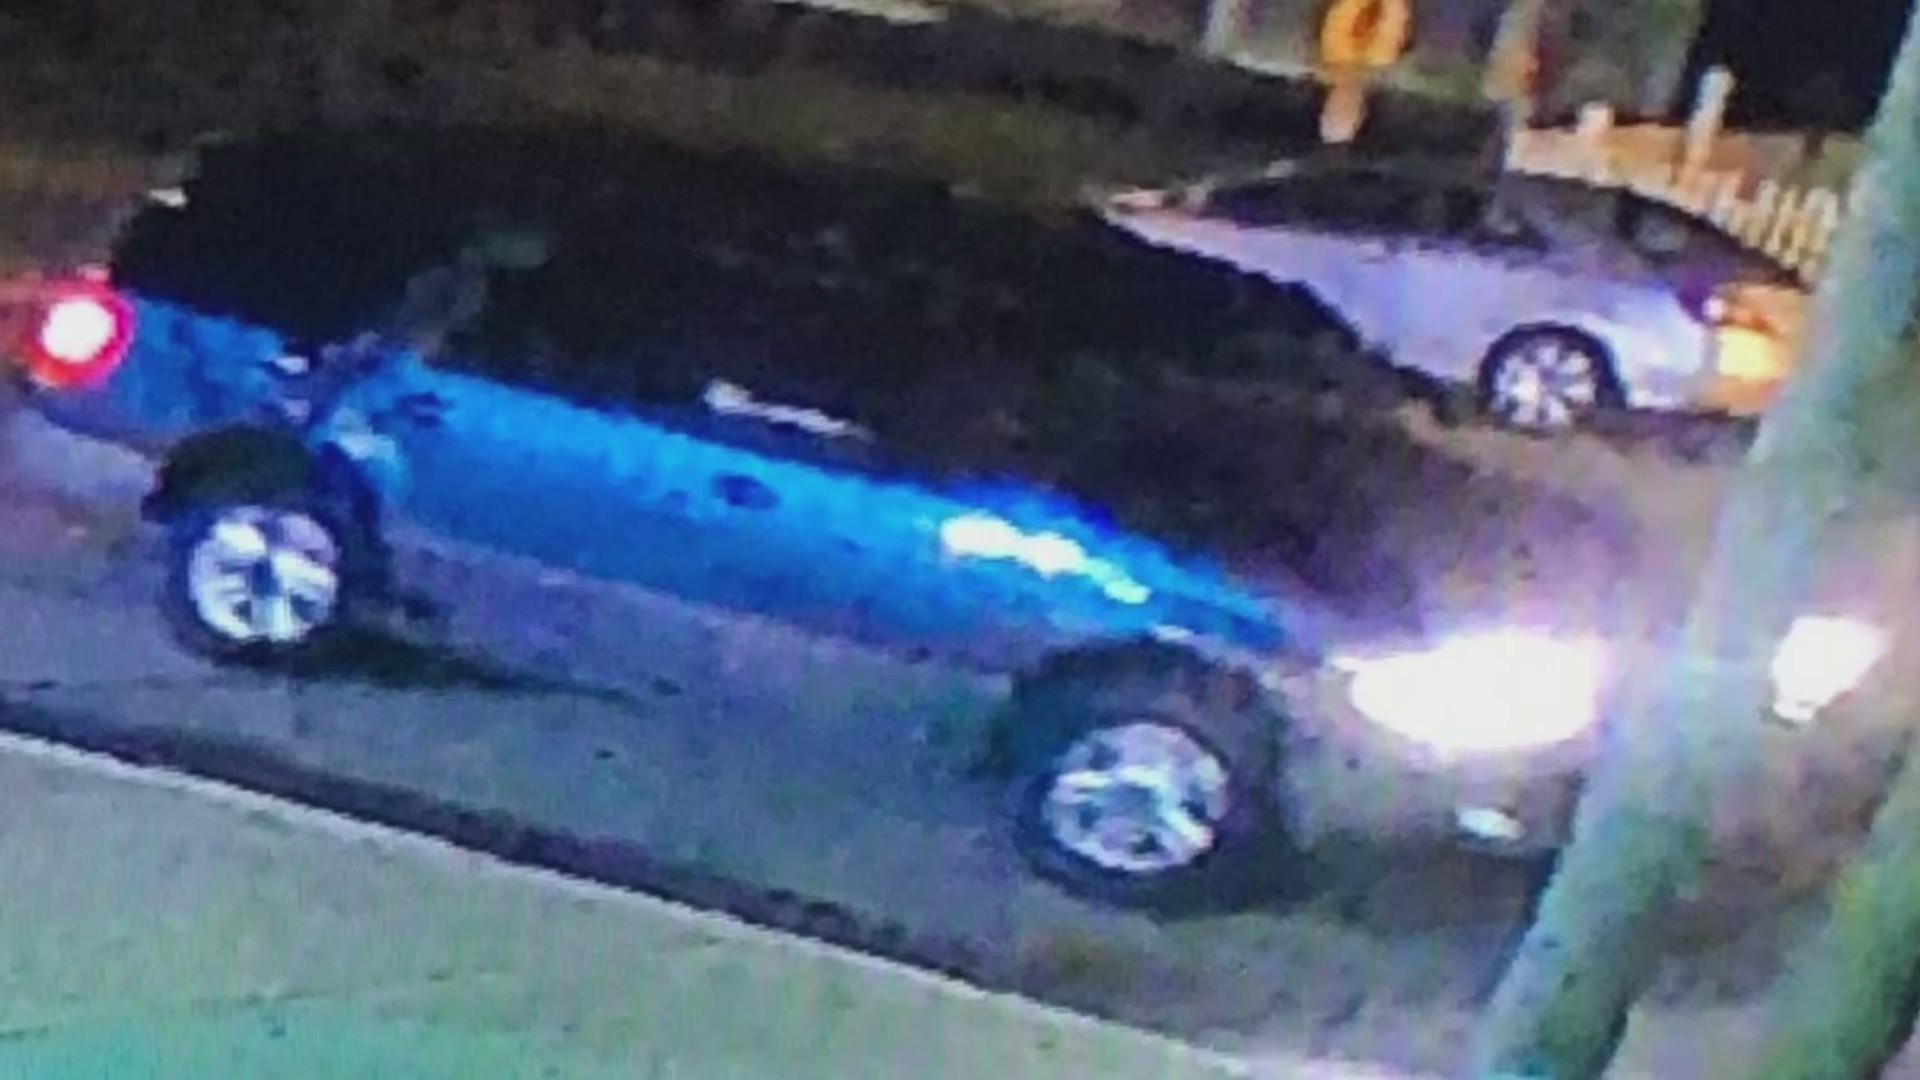 Police in Richmond need the public's help locating a vehicle wanted in connection with a deadly hit-and-run that occurred over the weekend.